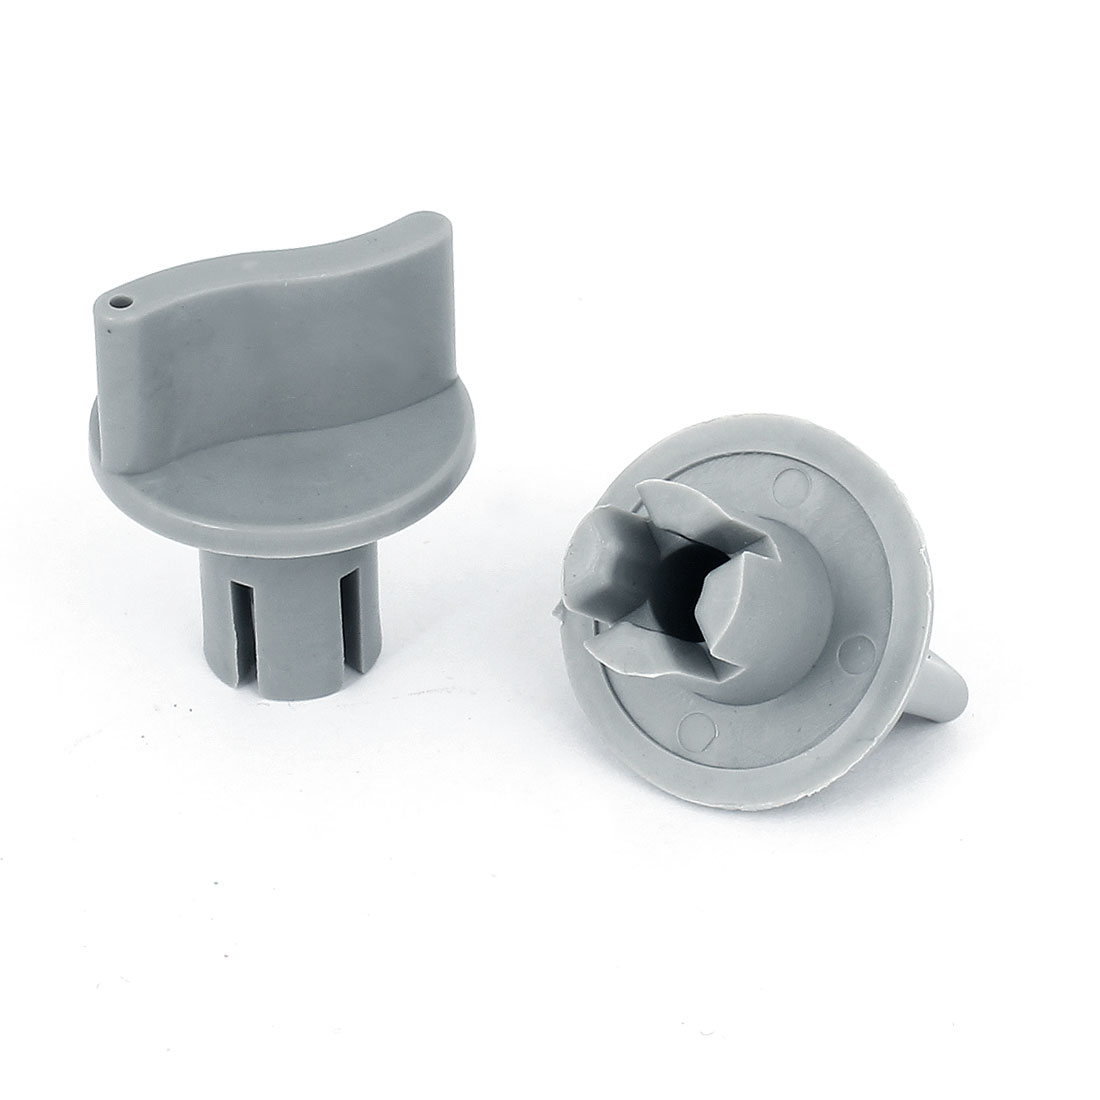 2pcs Gray Plastic Rotatable Knob Grip for Universal Changeover Switch